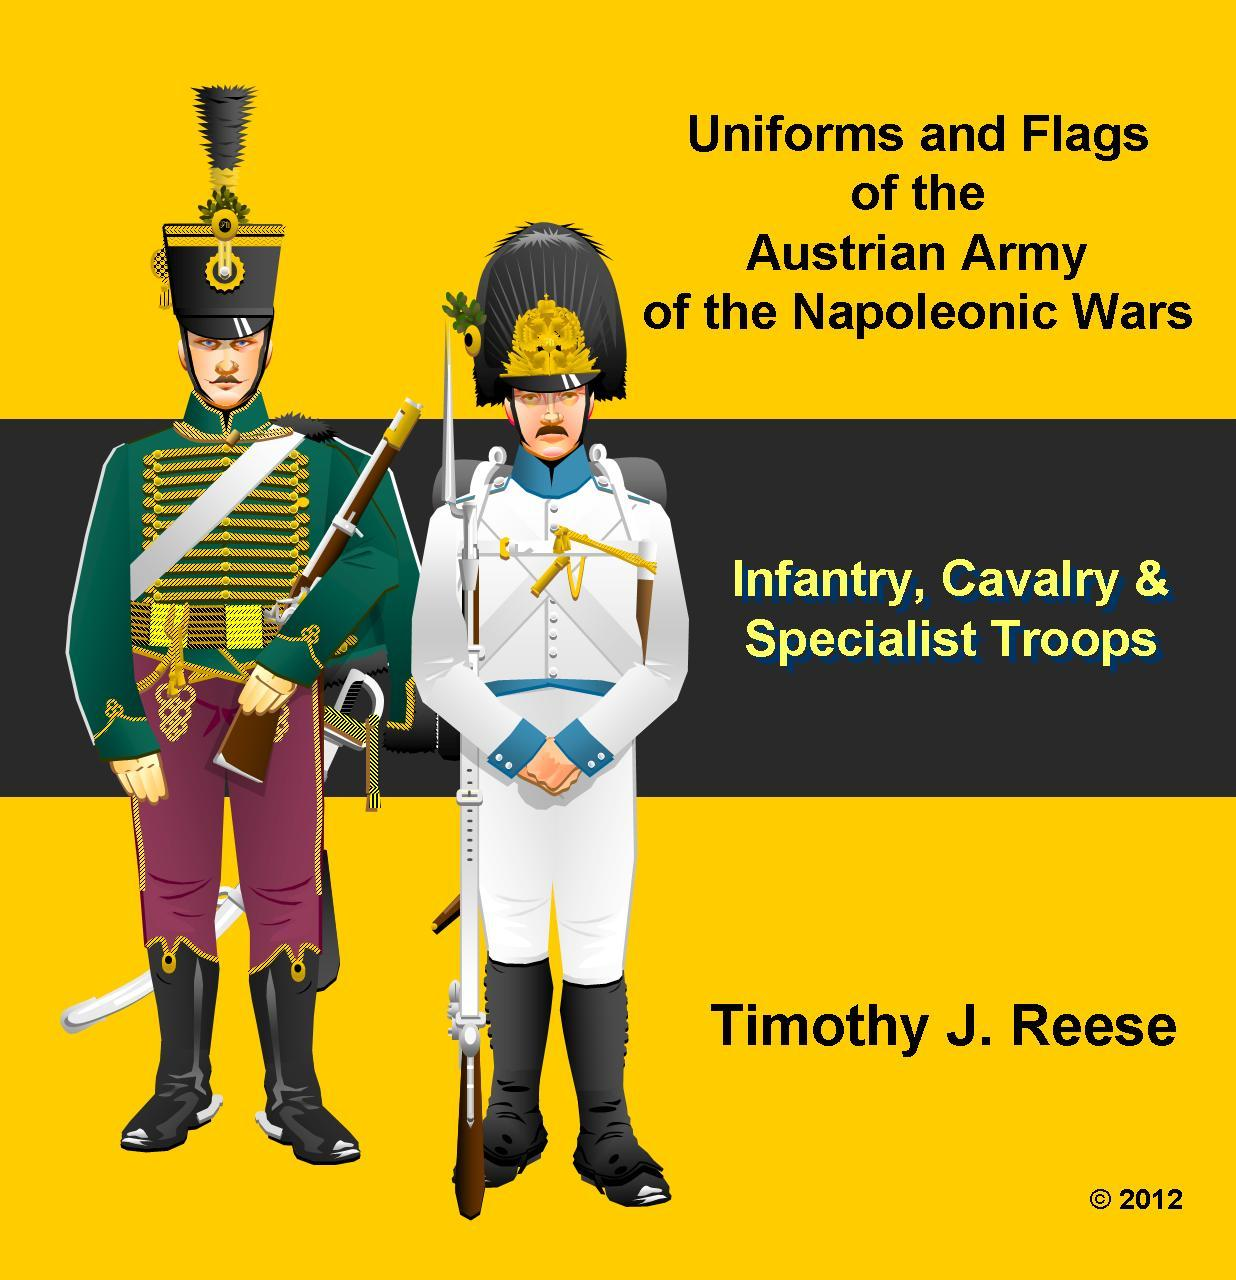 SAMPLE PLATE: Uniforms and Flags of the Austrian Army of the Napoleonic Wars